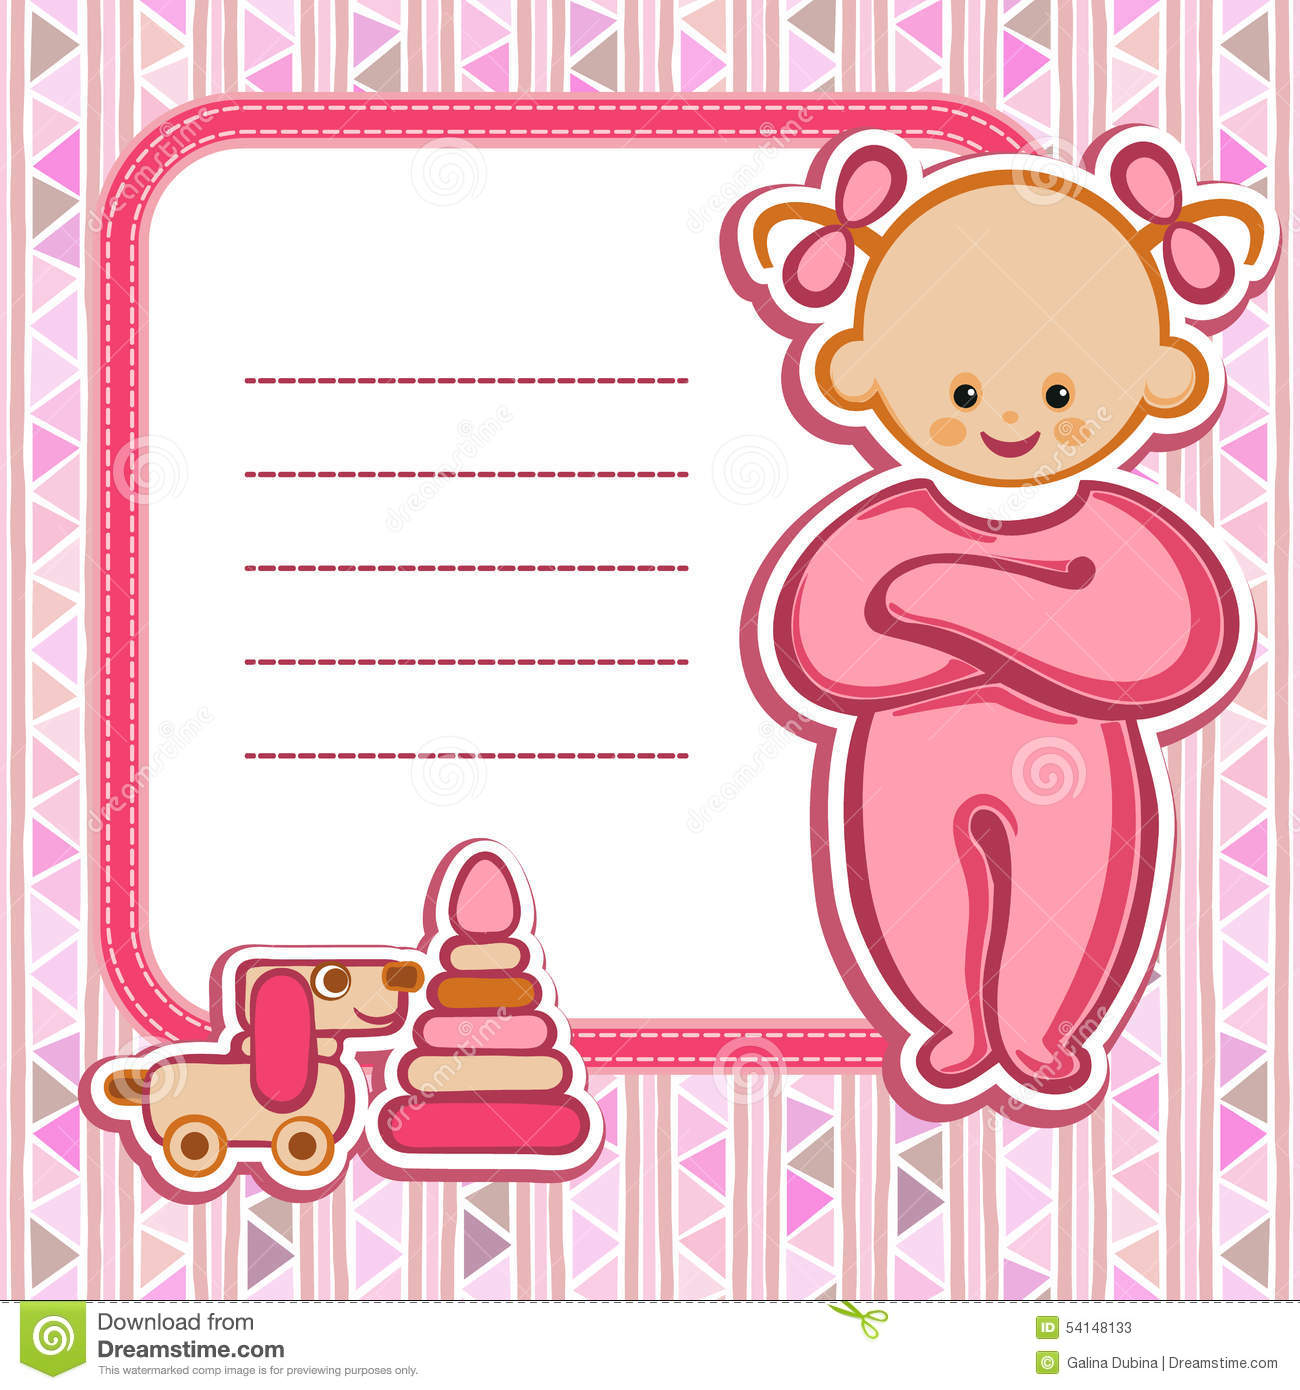 baby birthday wishes card ; card-baby-girl-birthday-nice-greeting-template-cute-simple-artistic-hand-drawn-illustration-doodle-shower-greetings-invitation-54148133